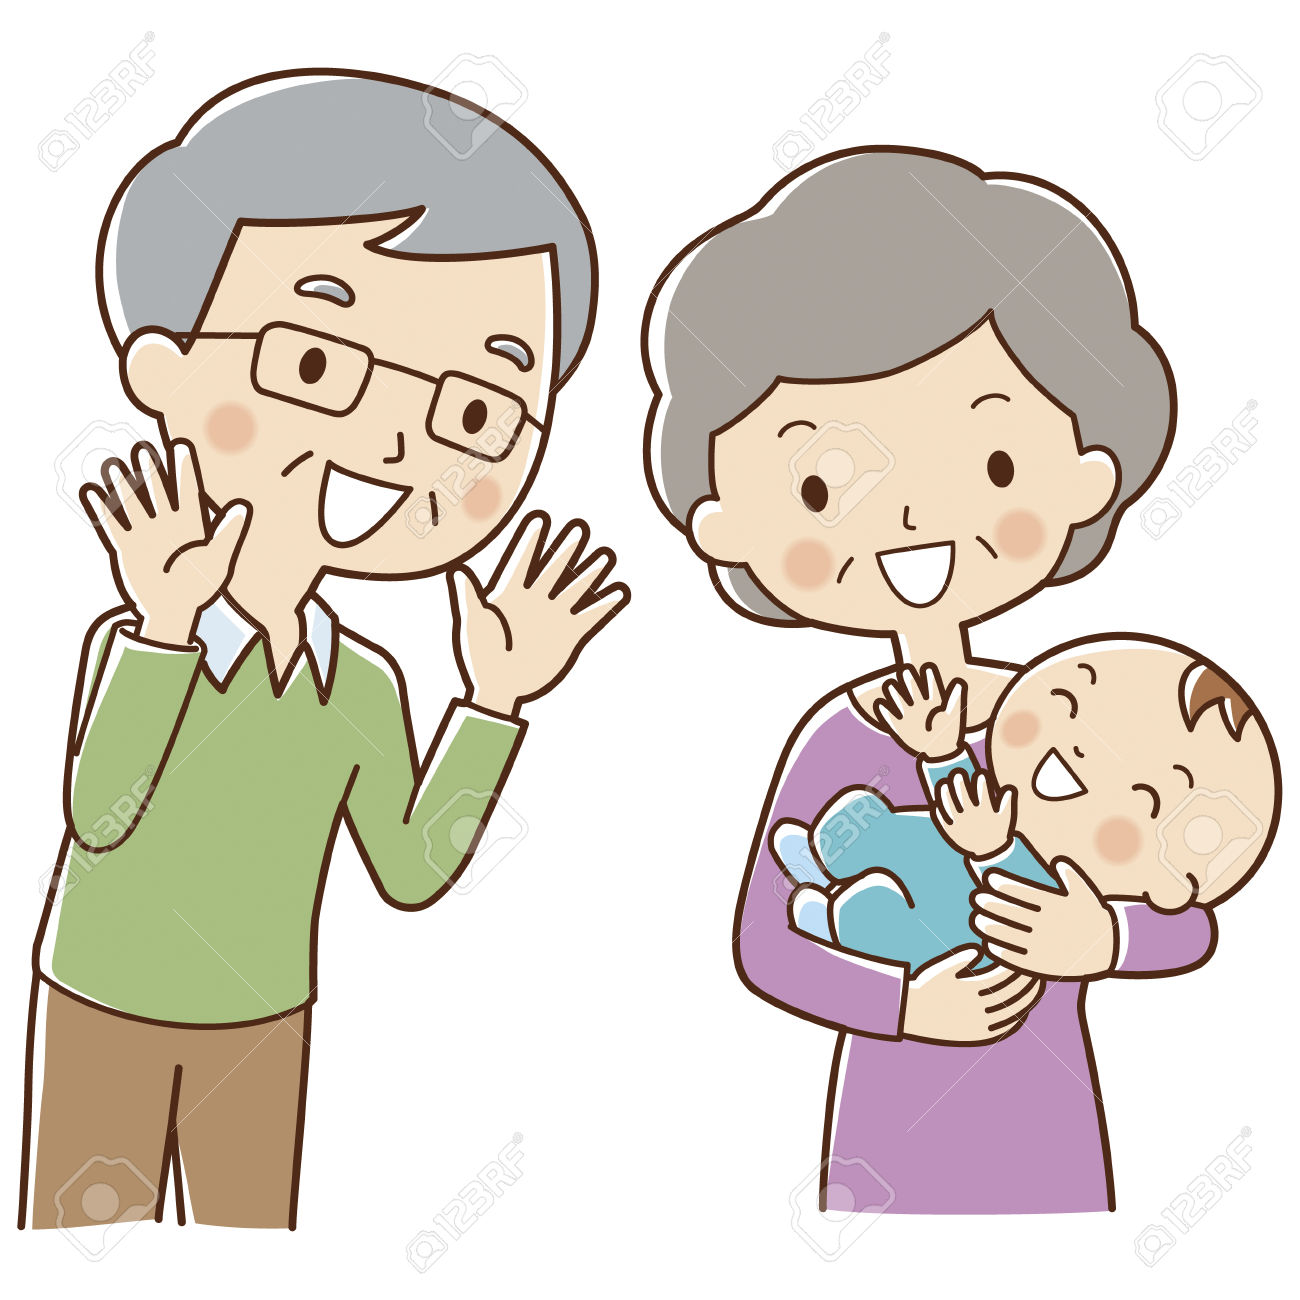 Grandma and grandpa clipart graphic royalty free stock Grandma And Grandpa Clipart | Free download best Grandma And Grandpa ... graphic royalty free stock